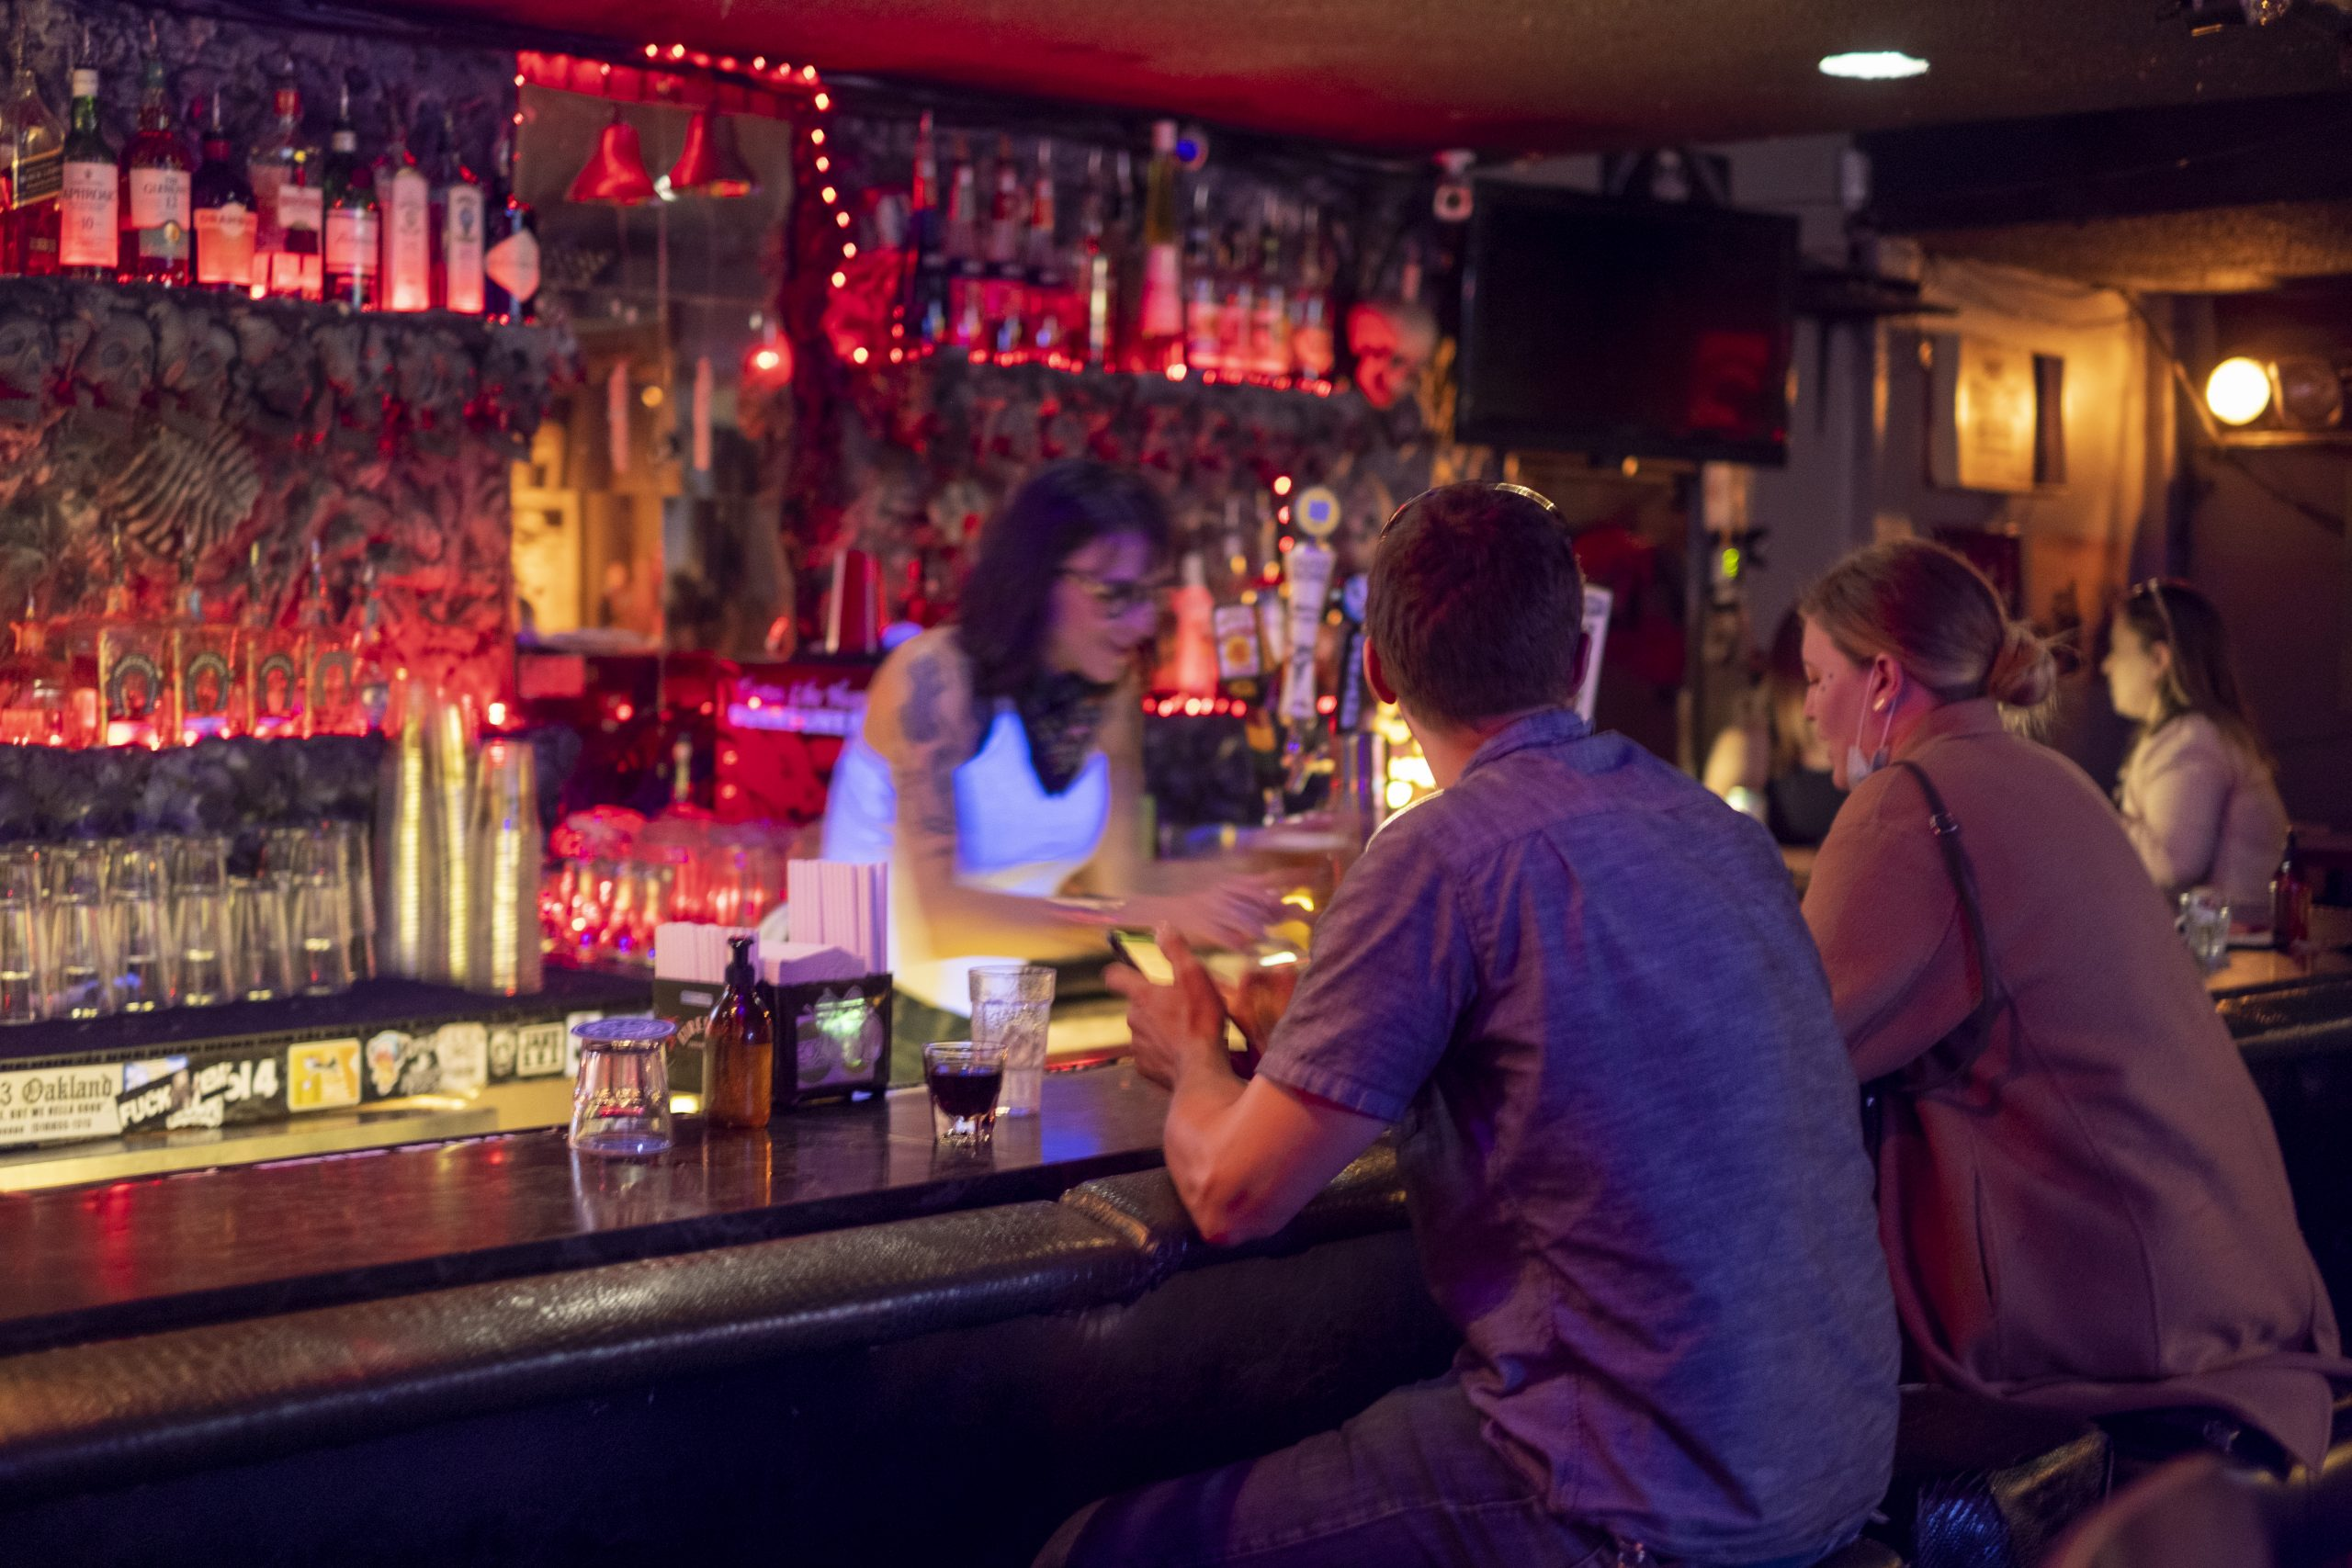 We're back to being people': The first night without masks at Oakland's bars